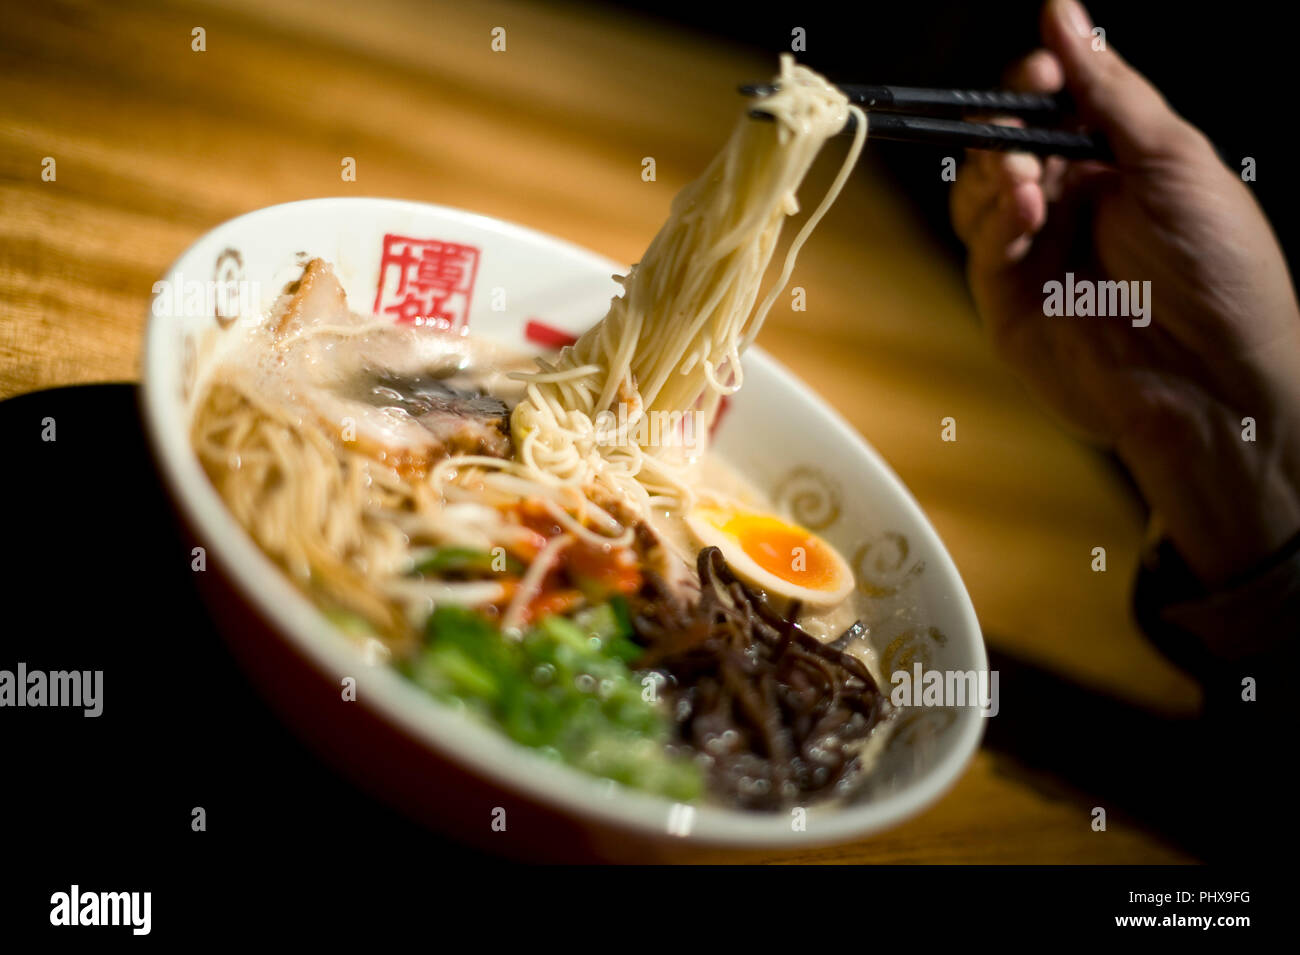 Photo shows soup noodles prepared at Hakata Ippudo Ramen's main store in the Daimyo district of Fukuoka City, Fukuoka Prefecture Japan on 08 March 201 Stock Photo